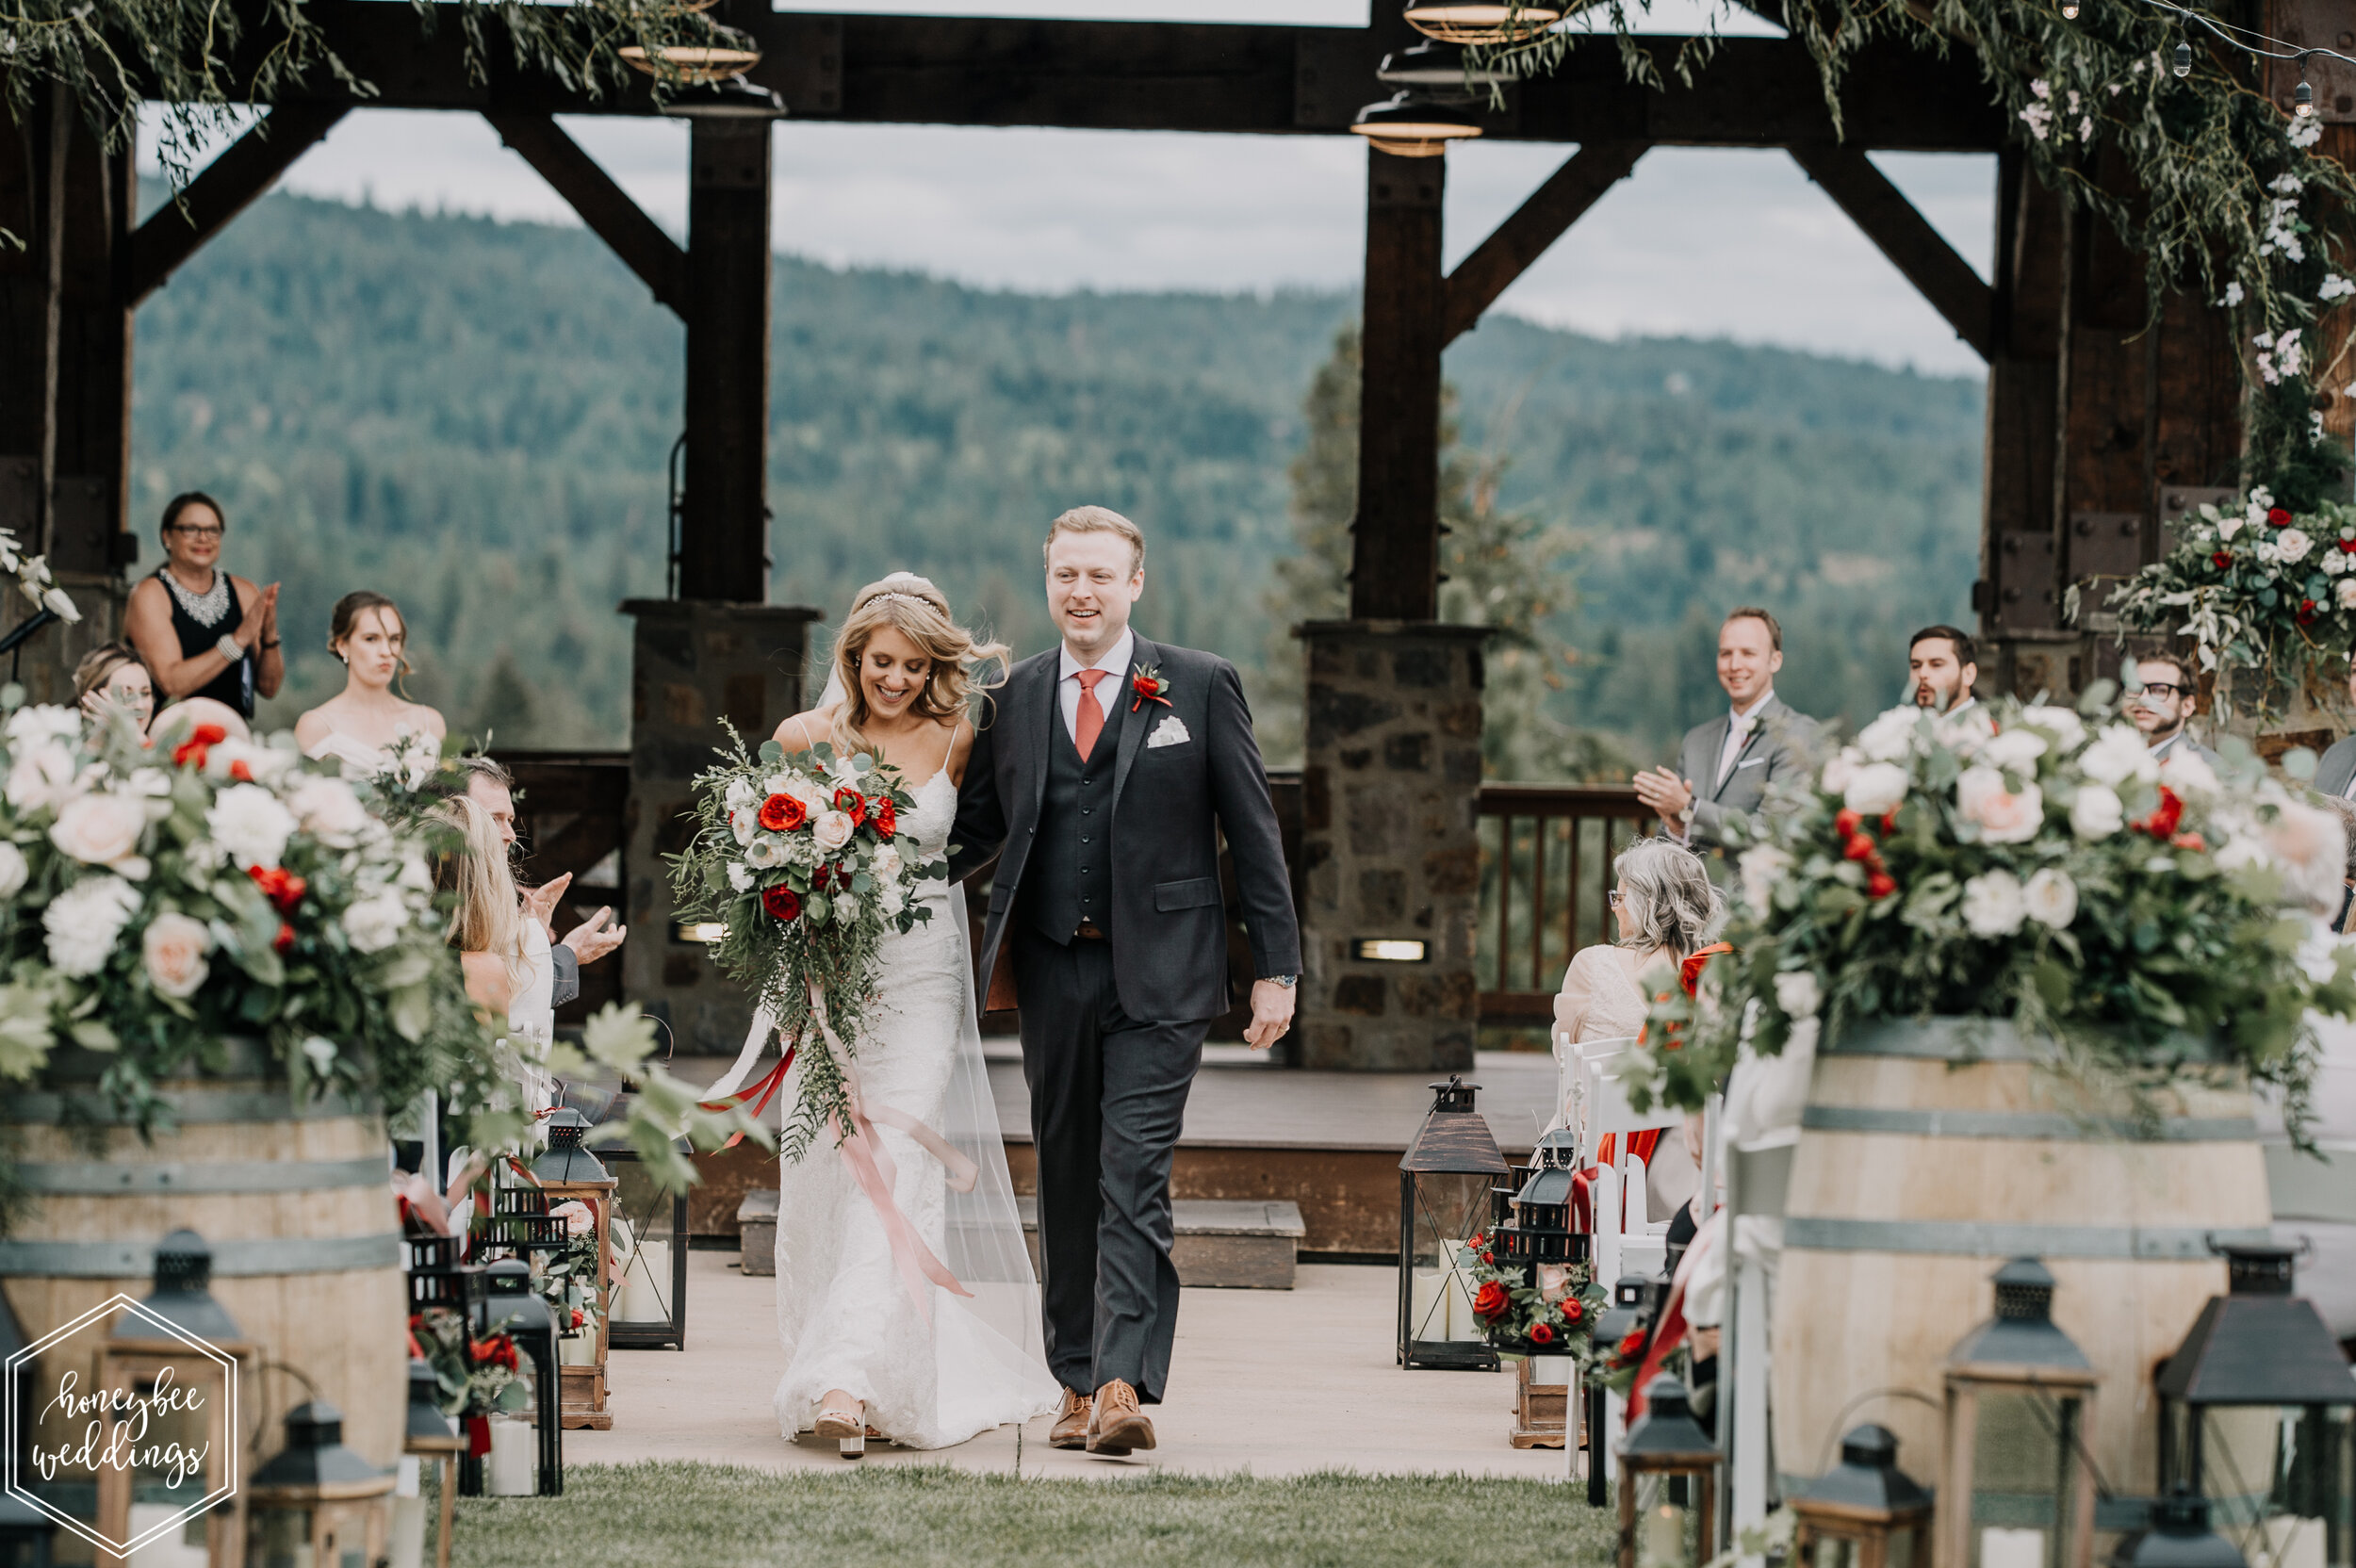 0111Swiftwater Cellars Wedding_Cle Elum Wedding_Montana Wedding Photographer_Kat & Kyle_September 15, 2018-1199.jpg